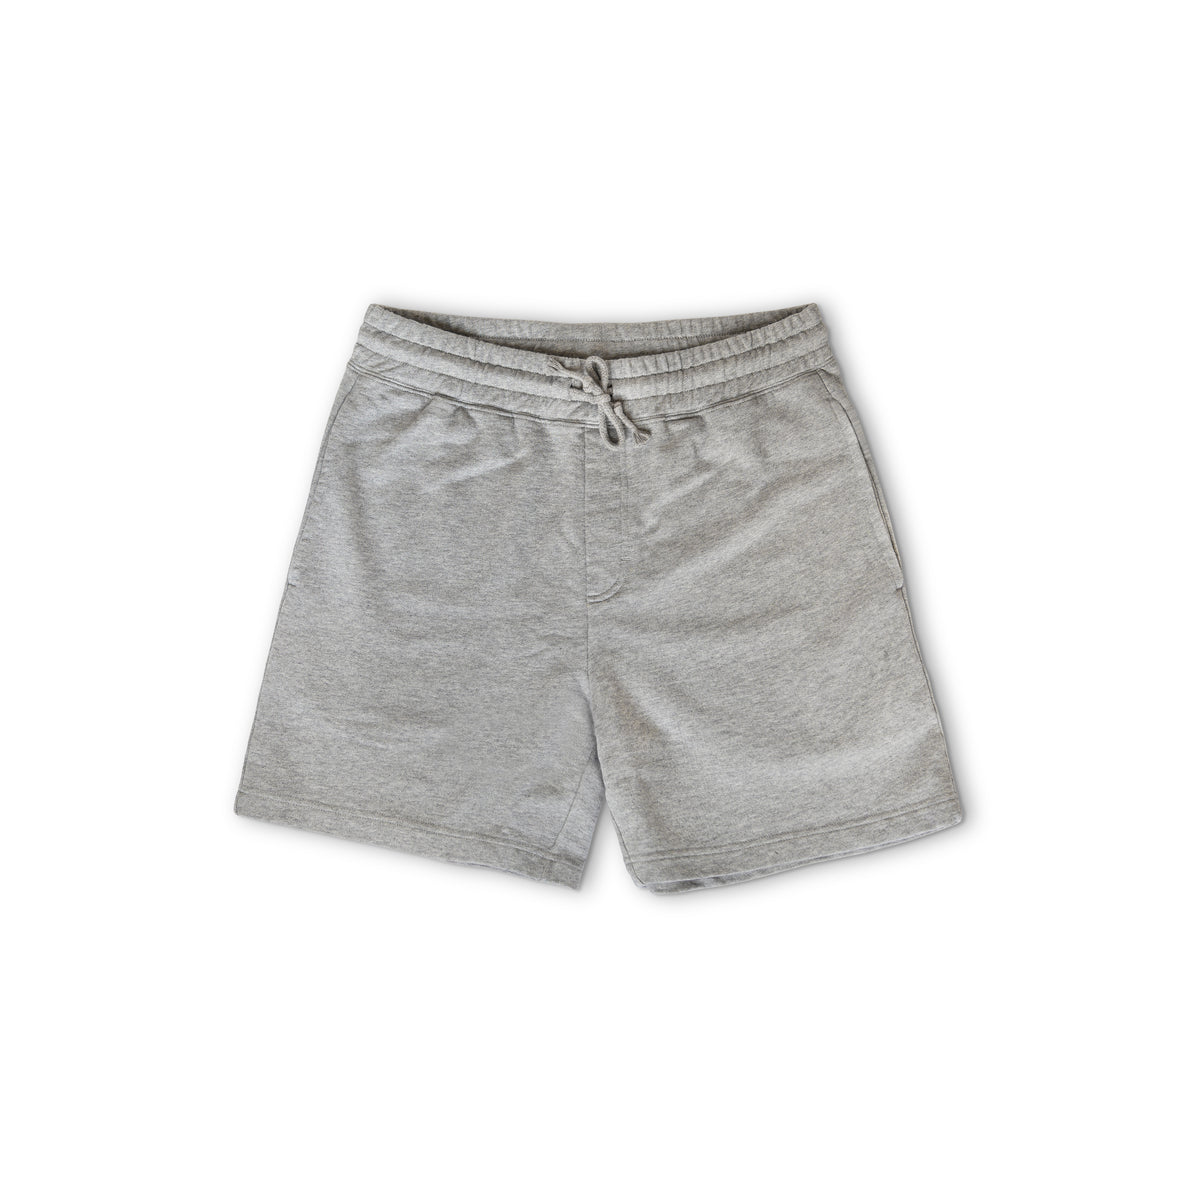 Sweatpant Short Grey - Unrecorded